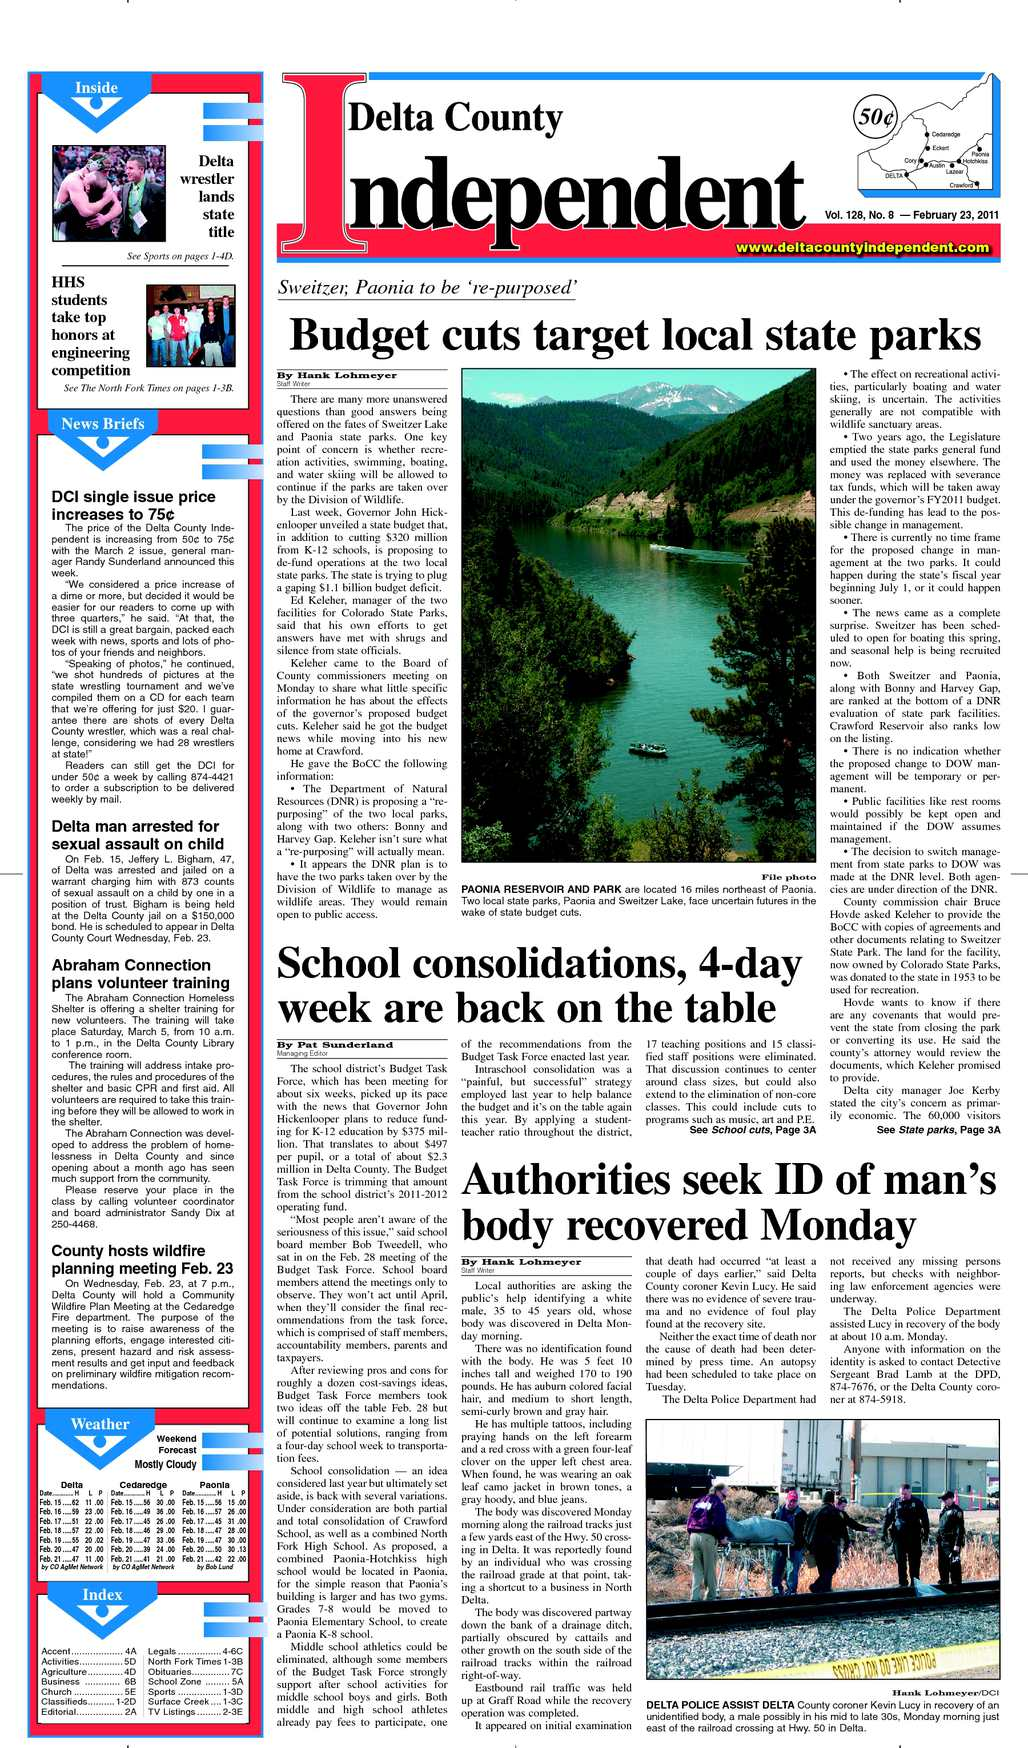 Calaméo - Delta County Independent, Issue 8, Feb  23, 2011